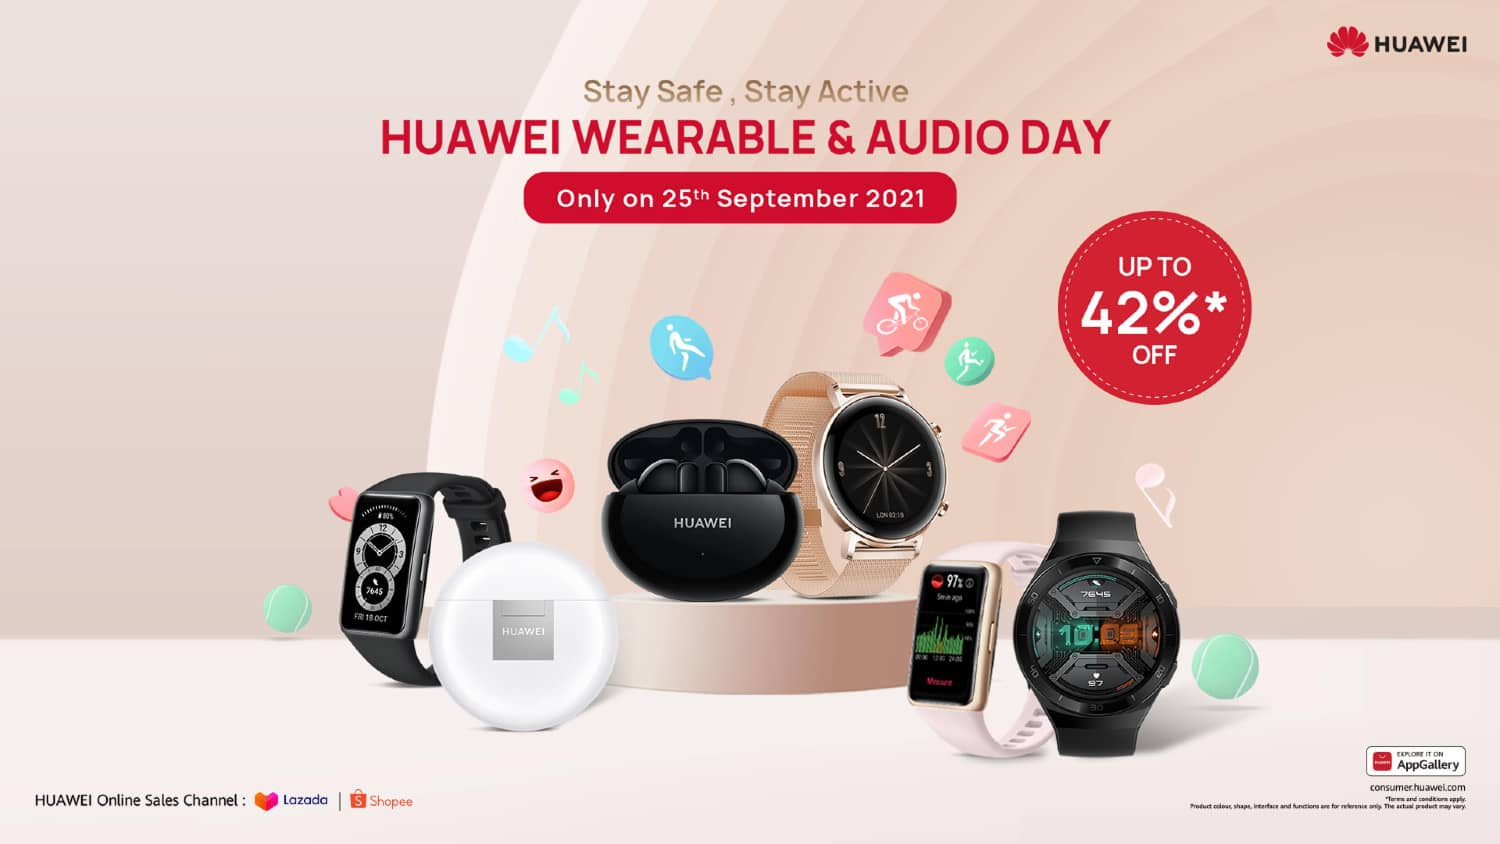 Save More On Your New HUAWEI Wearable and Audio Gadgets on 25th September